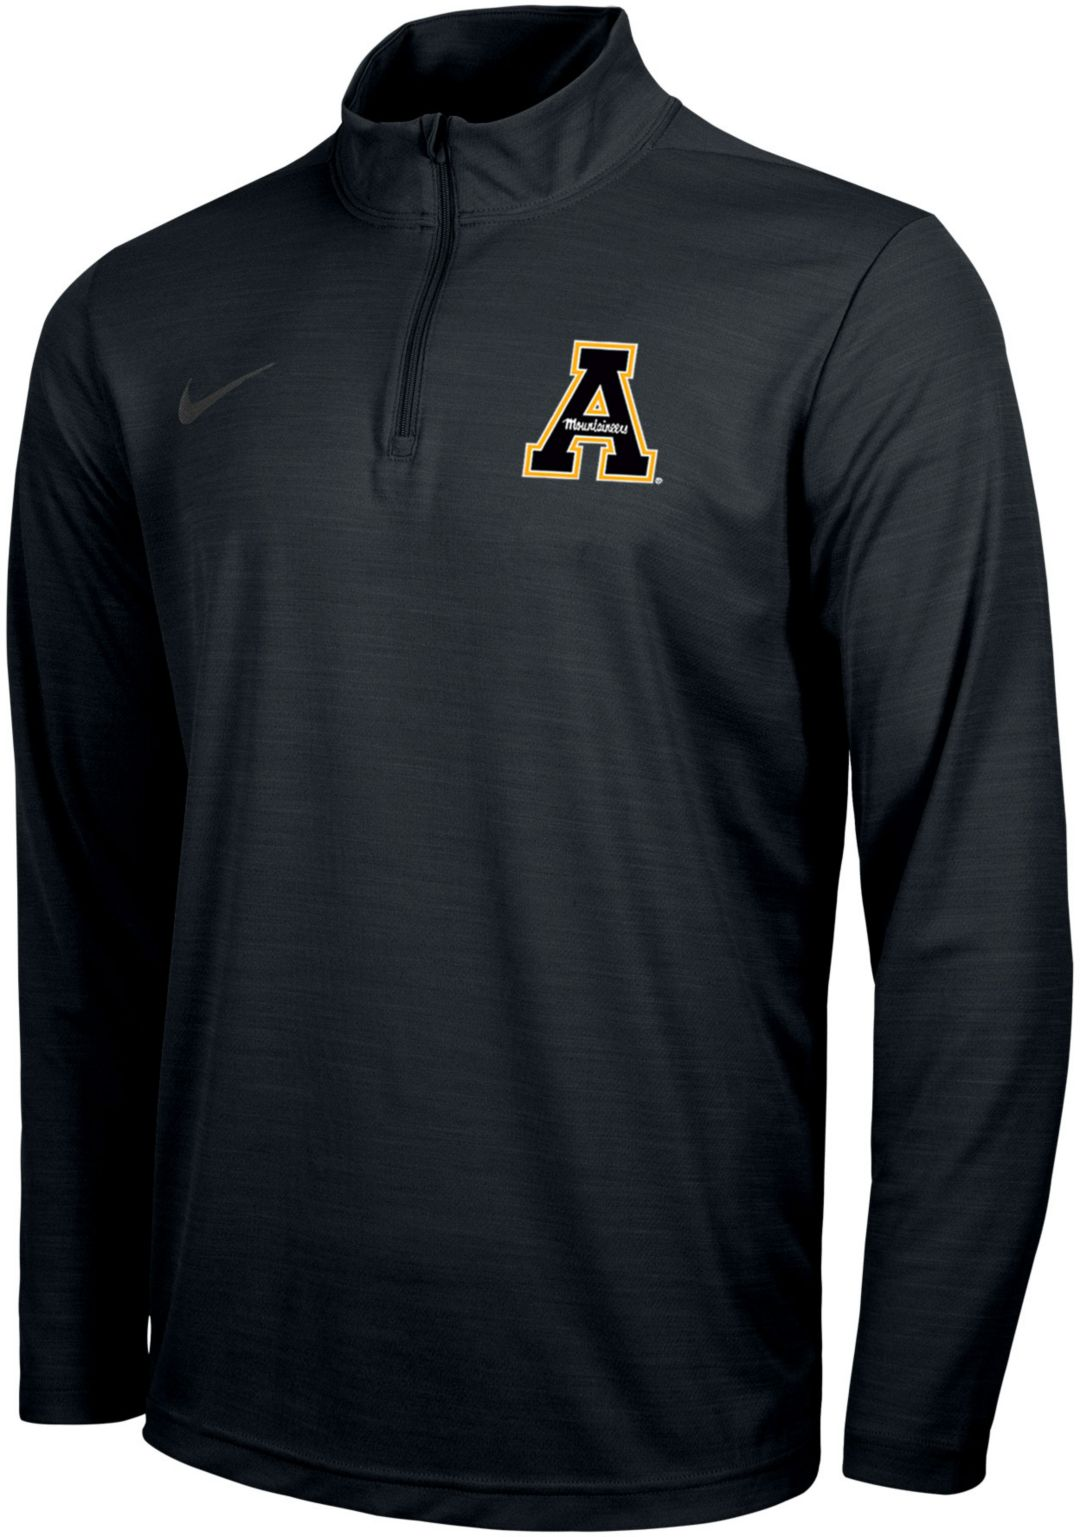 newest 6724f 2fc39 Nike Men's Appalachian State Mountaineers Intensity Quarter-Zip Black Shirt